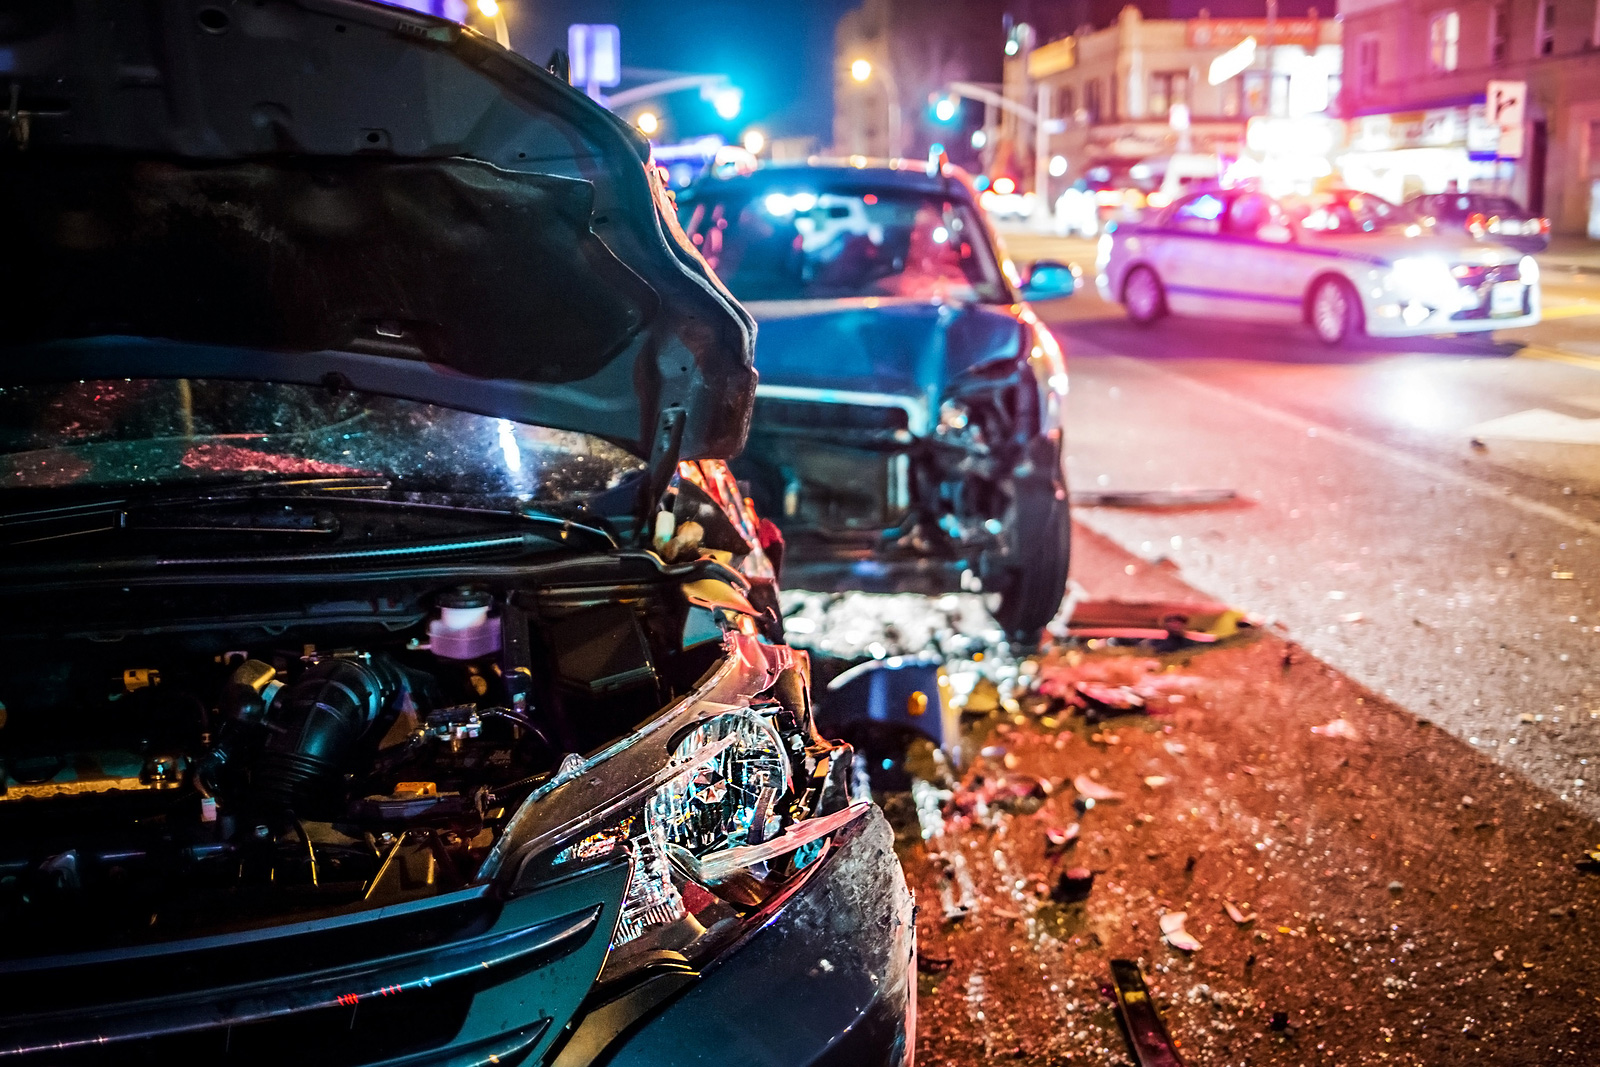 Two Crushed Cars Involved in DUI Drunk Driving Car Accident The Law Offices of Matthew Konecky